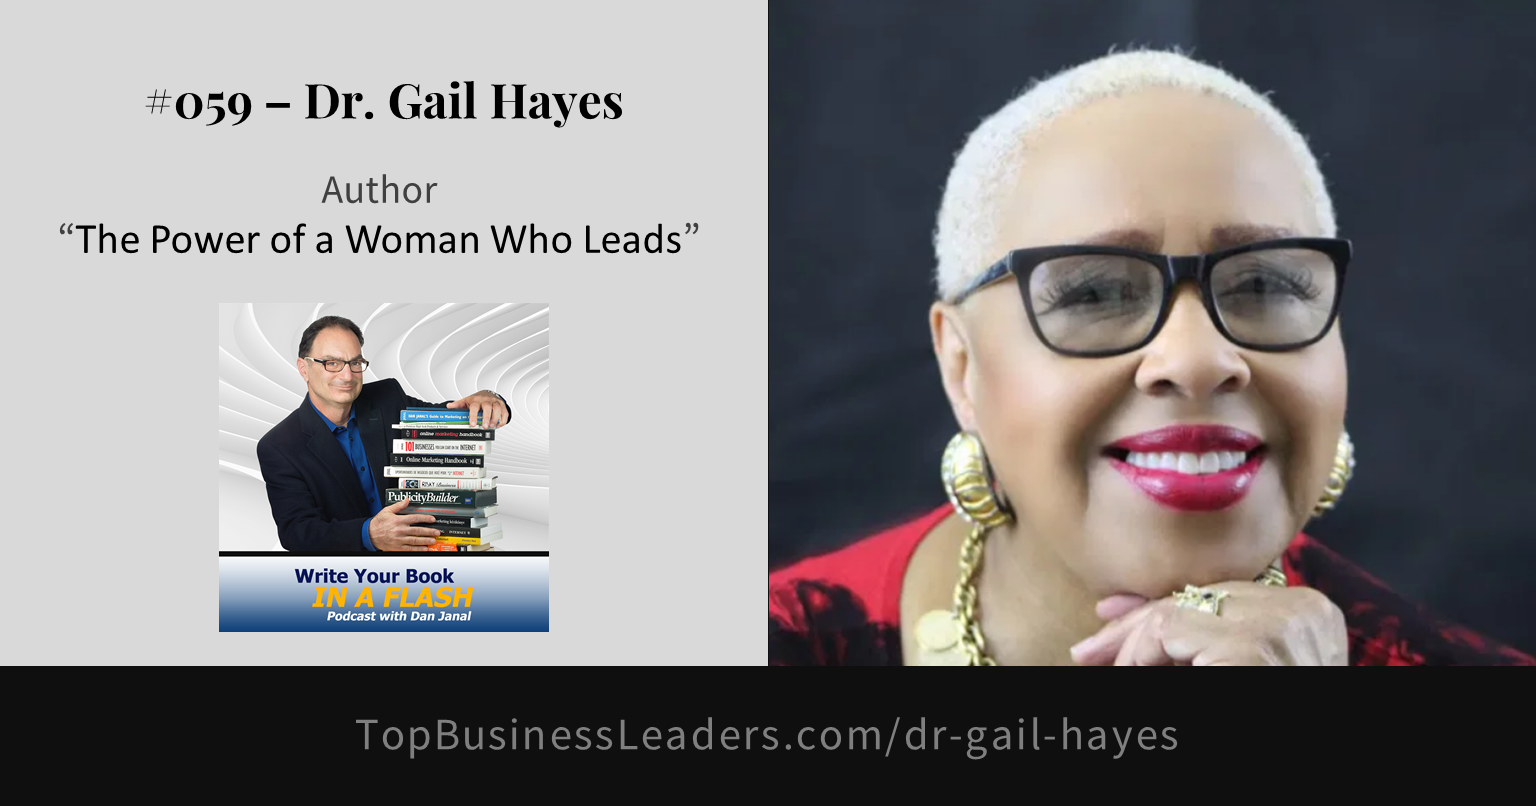 dr-gail-hayes-author-power-of-a-woman-who-leads